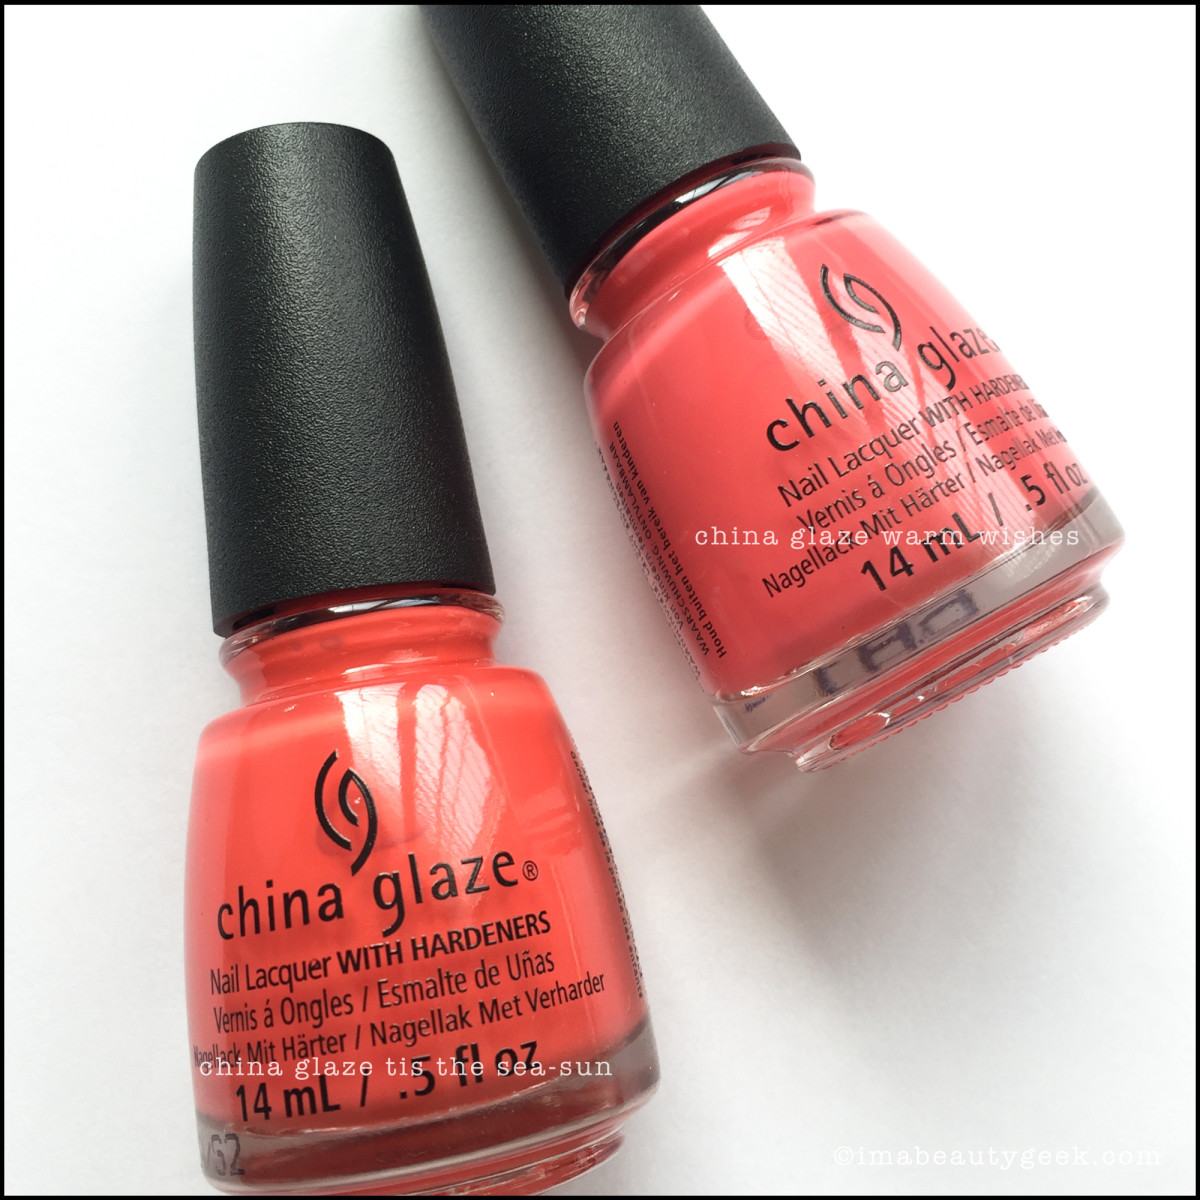 China Glaze Tis the SeaSun vs China Glaze Warm Wishes_China Glaze Seas Greetings Collection Swatches Review